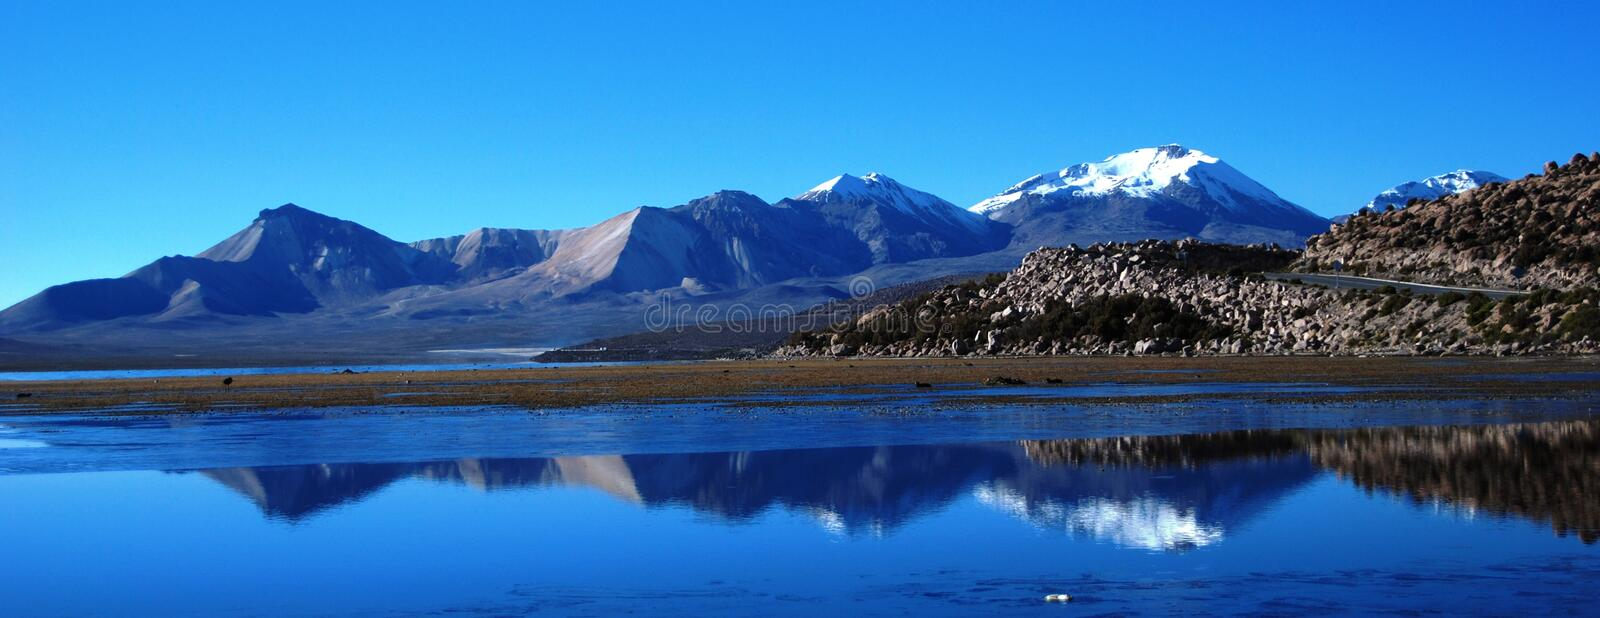 Snowy mountains reflection above lake stock image